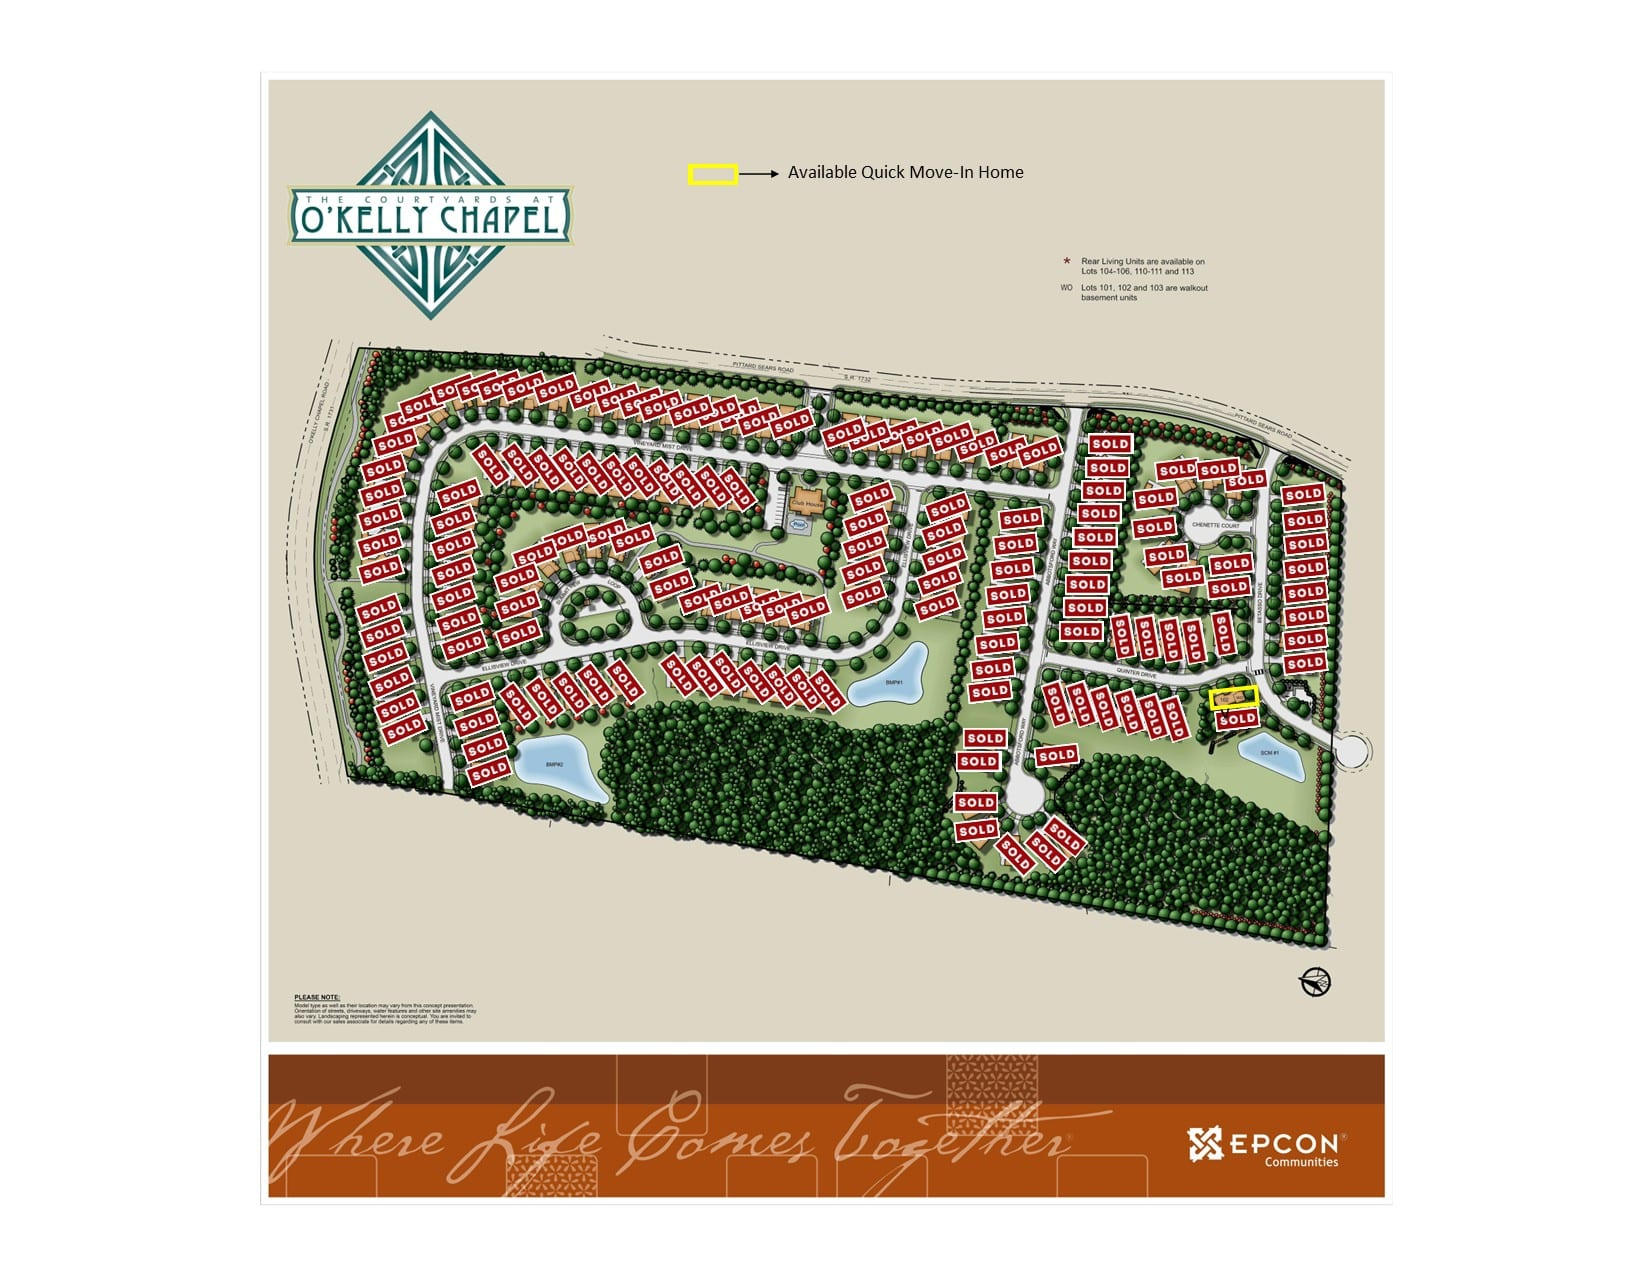 Courtyards at OKelly Chapel Map